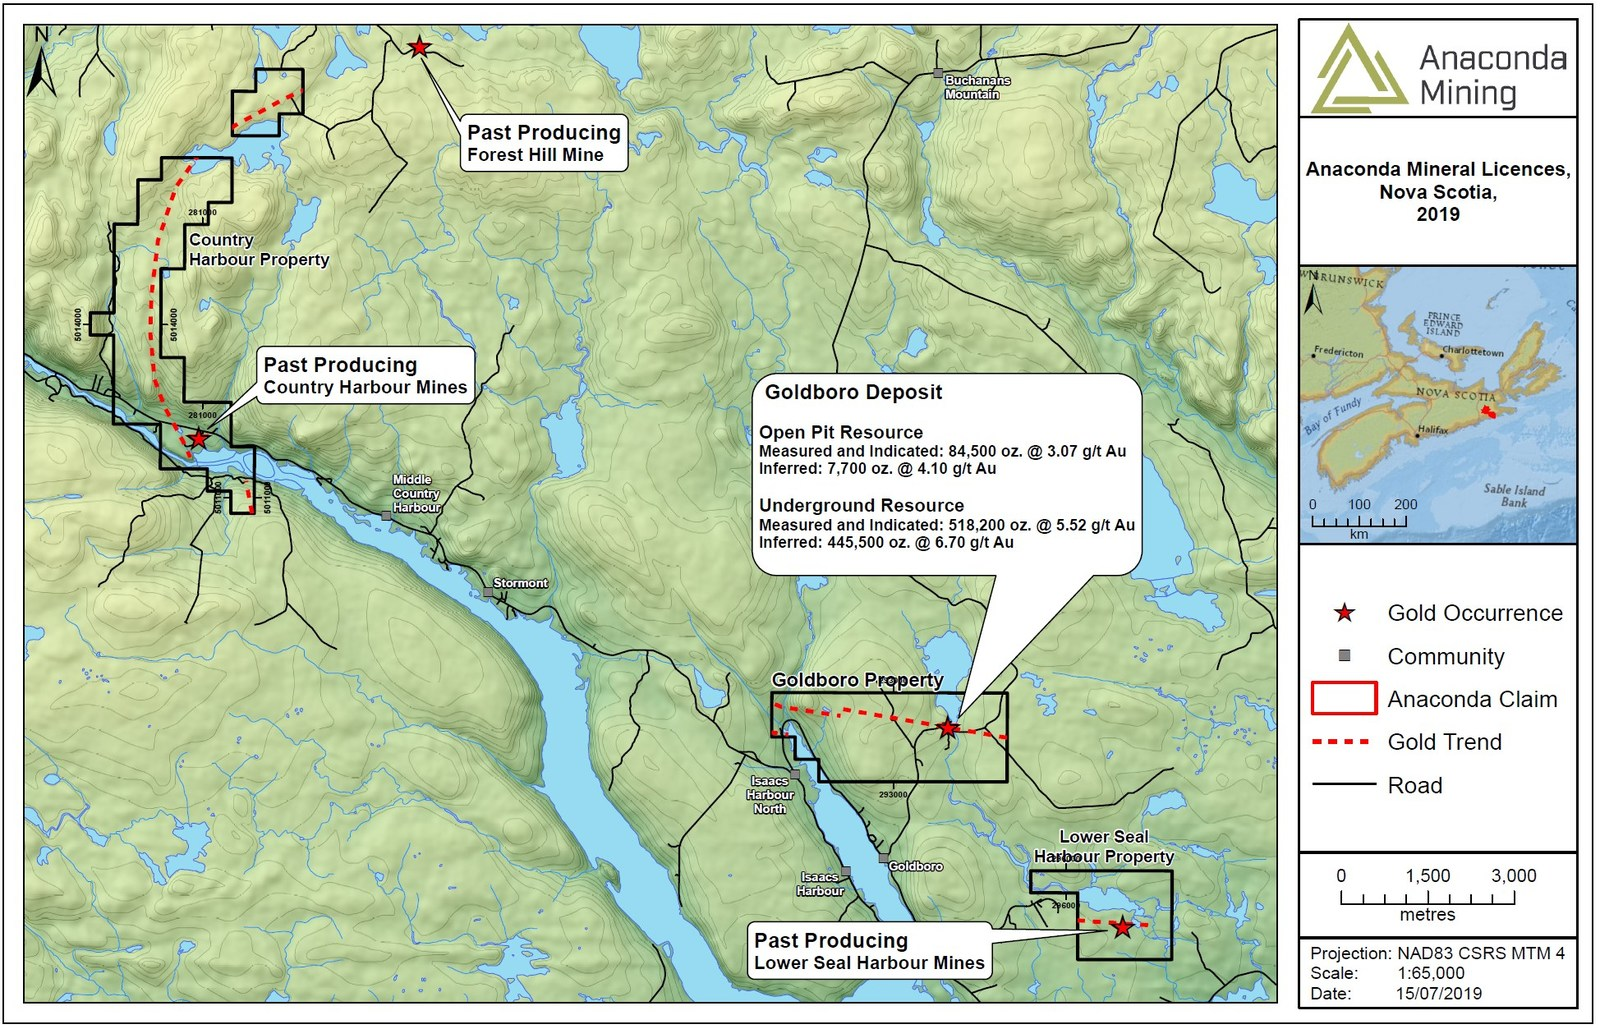 """Exhibit A. A map of South Eastern Nova Scotia showing the location of the Goldboro Project and the recently acquired Country Harbour and Lower Seal Harbour properties. The mineral resource for the Goldboro Deposit is taken from the technical report titled """"GOLDBORO PROJECT, MINERAL RESOURCE UPDATE AND PRELIMINARY ECONOMIC ASSESSMENT - GUYSBOROUGH COUNTY, NOVA SCOTIA"""", with an effective date of December 10, 2018 and a Mineral Resource effective date of July 19, 2018"""